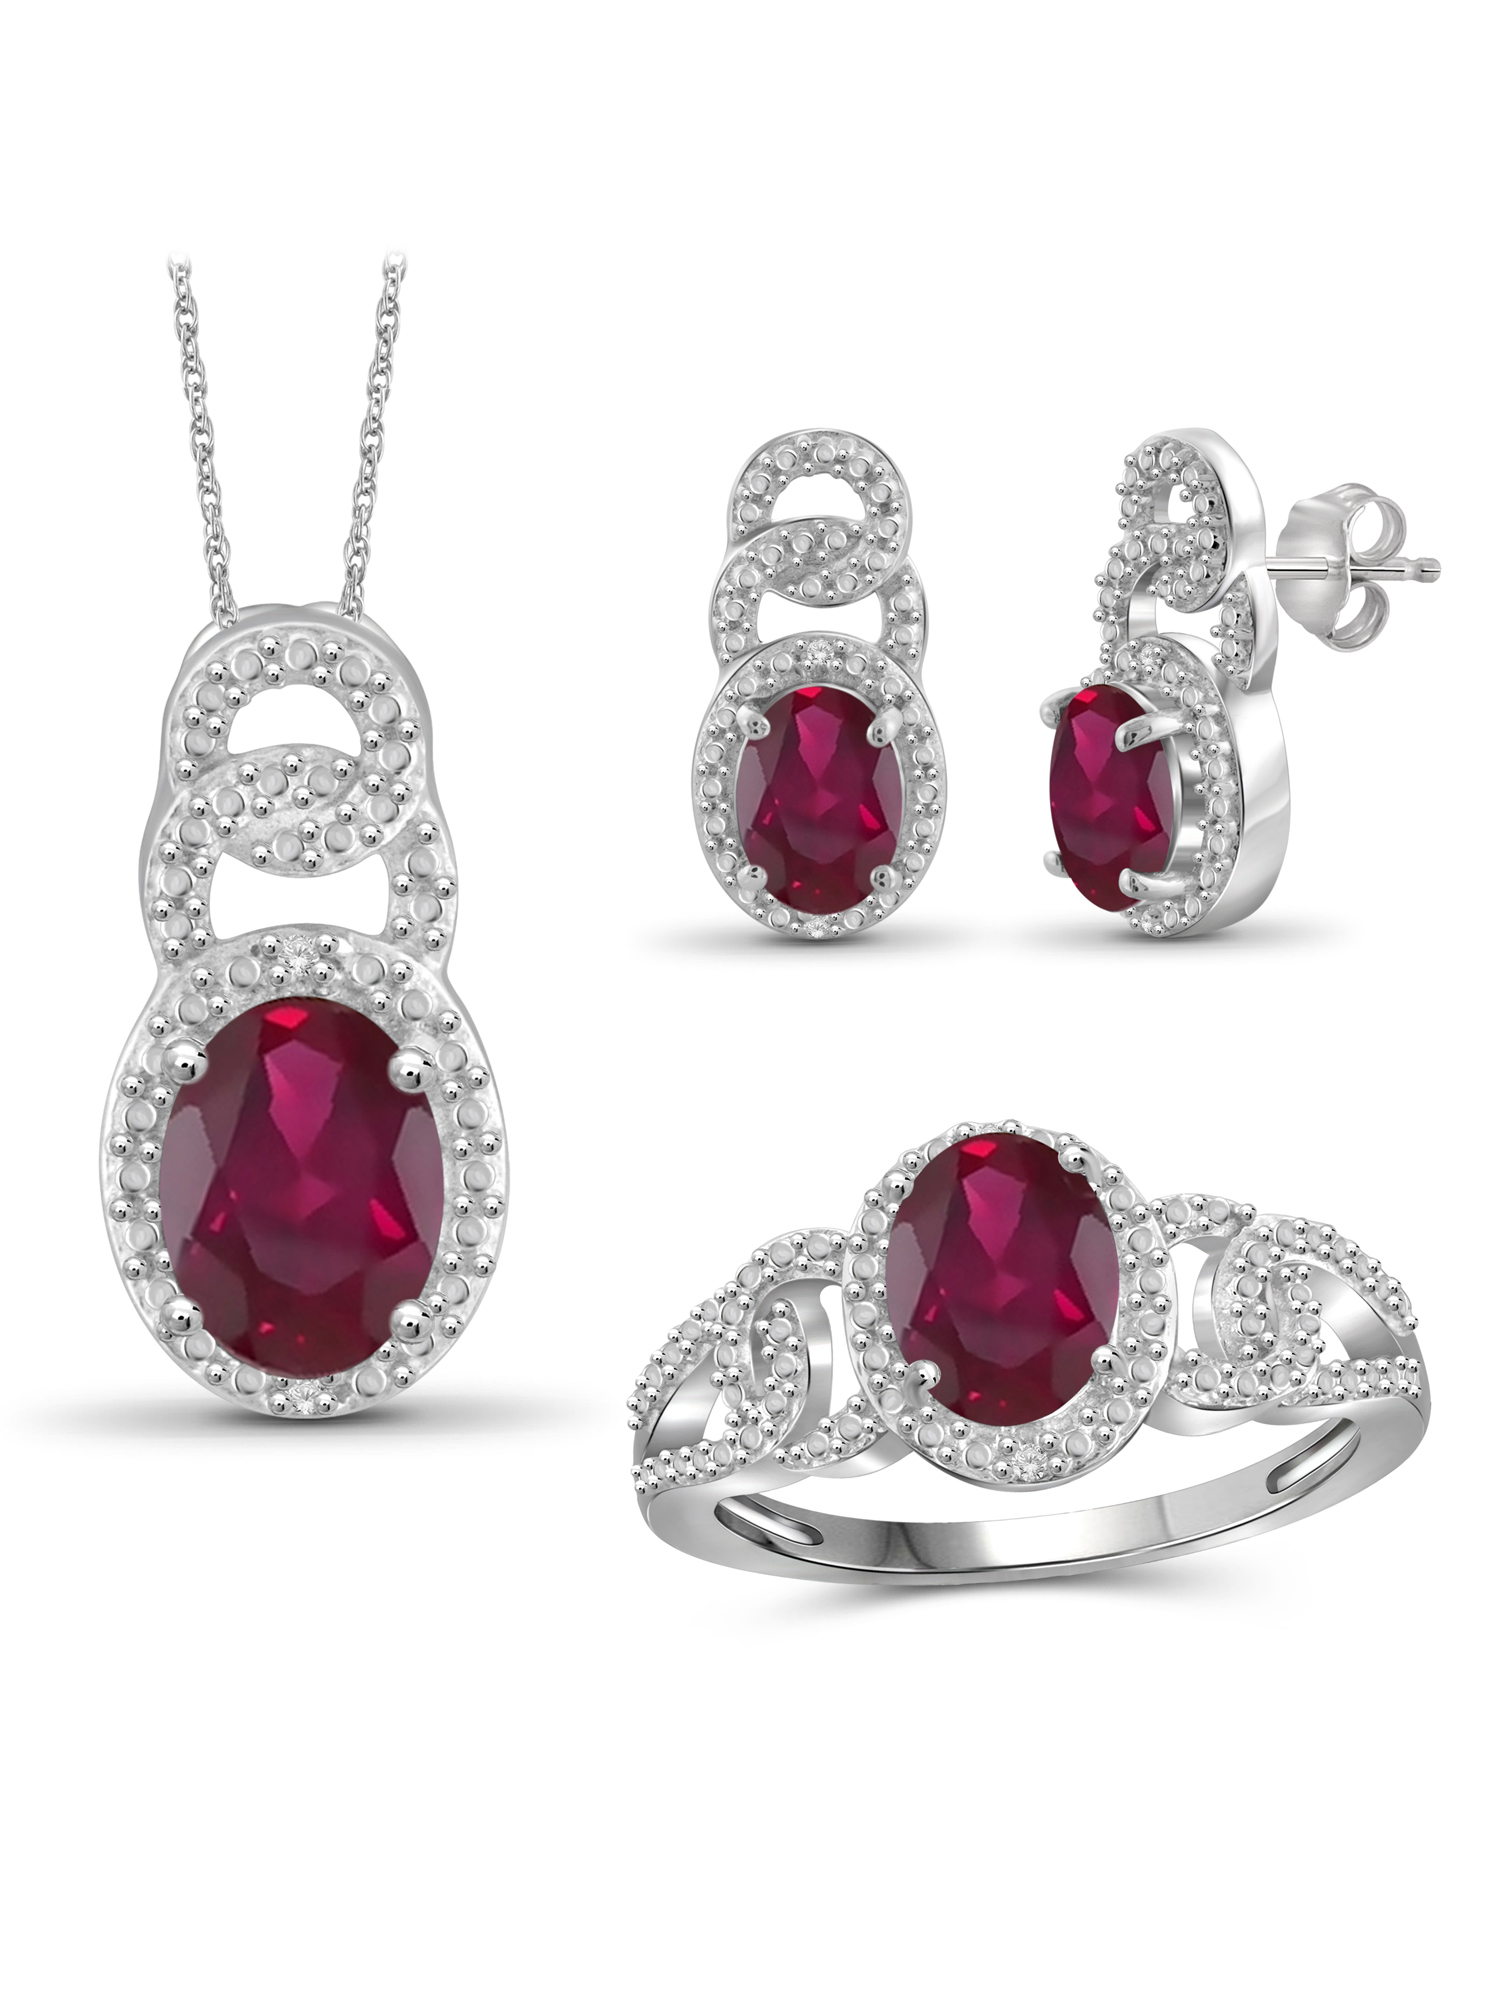 JewelersClub 5 1 2 Carat T.G.W. Ruby And White Diamond Accent Sterling Silver 3-Piece Jewelry set by JewelersClub